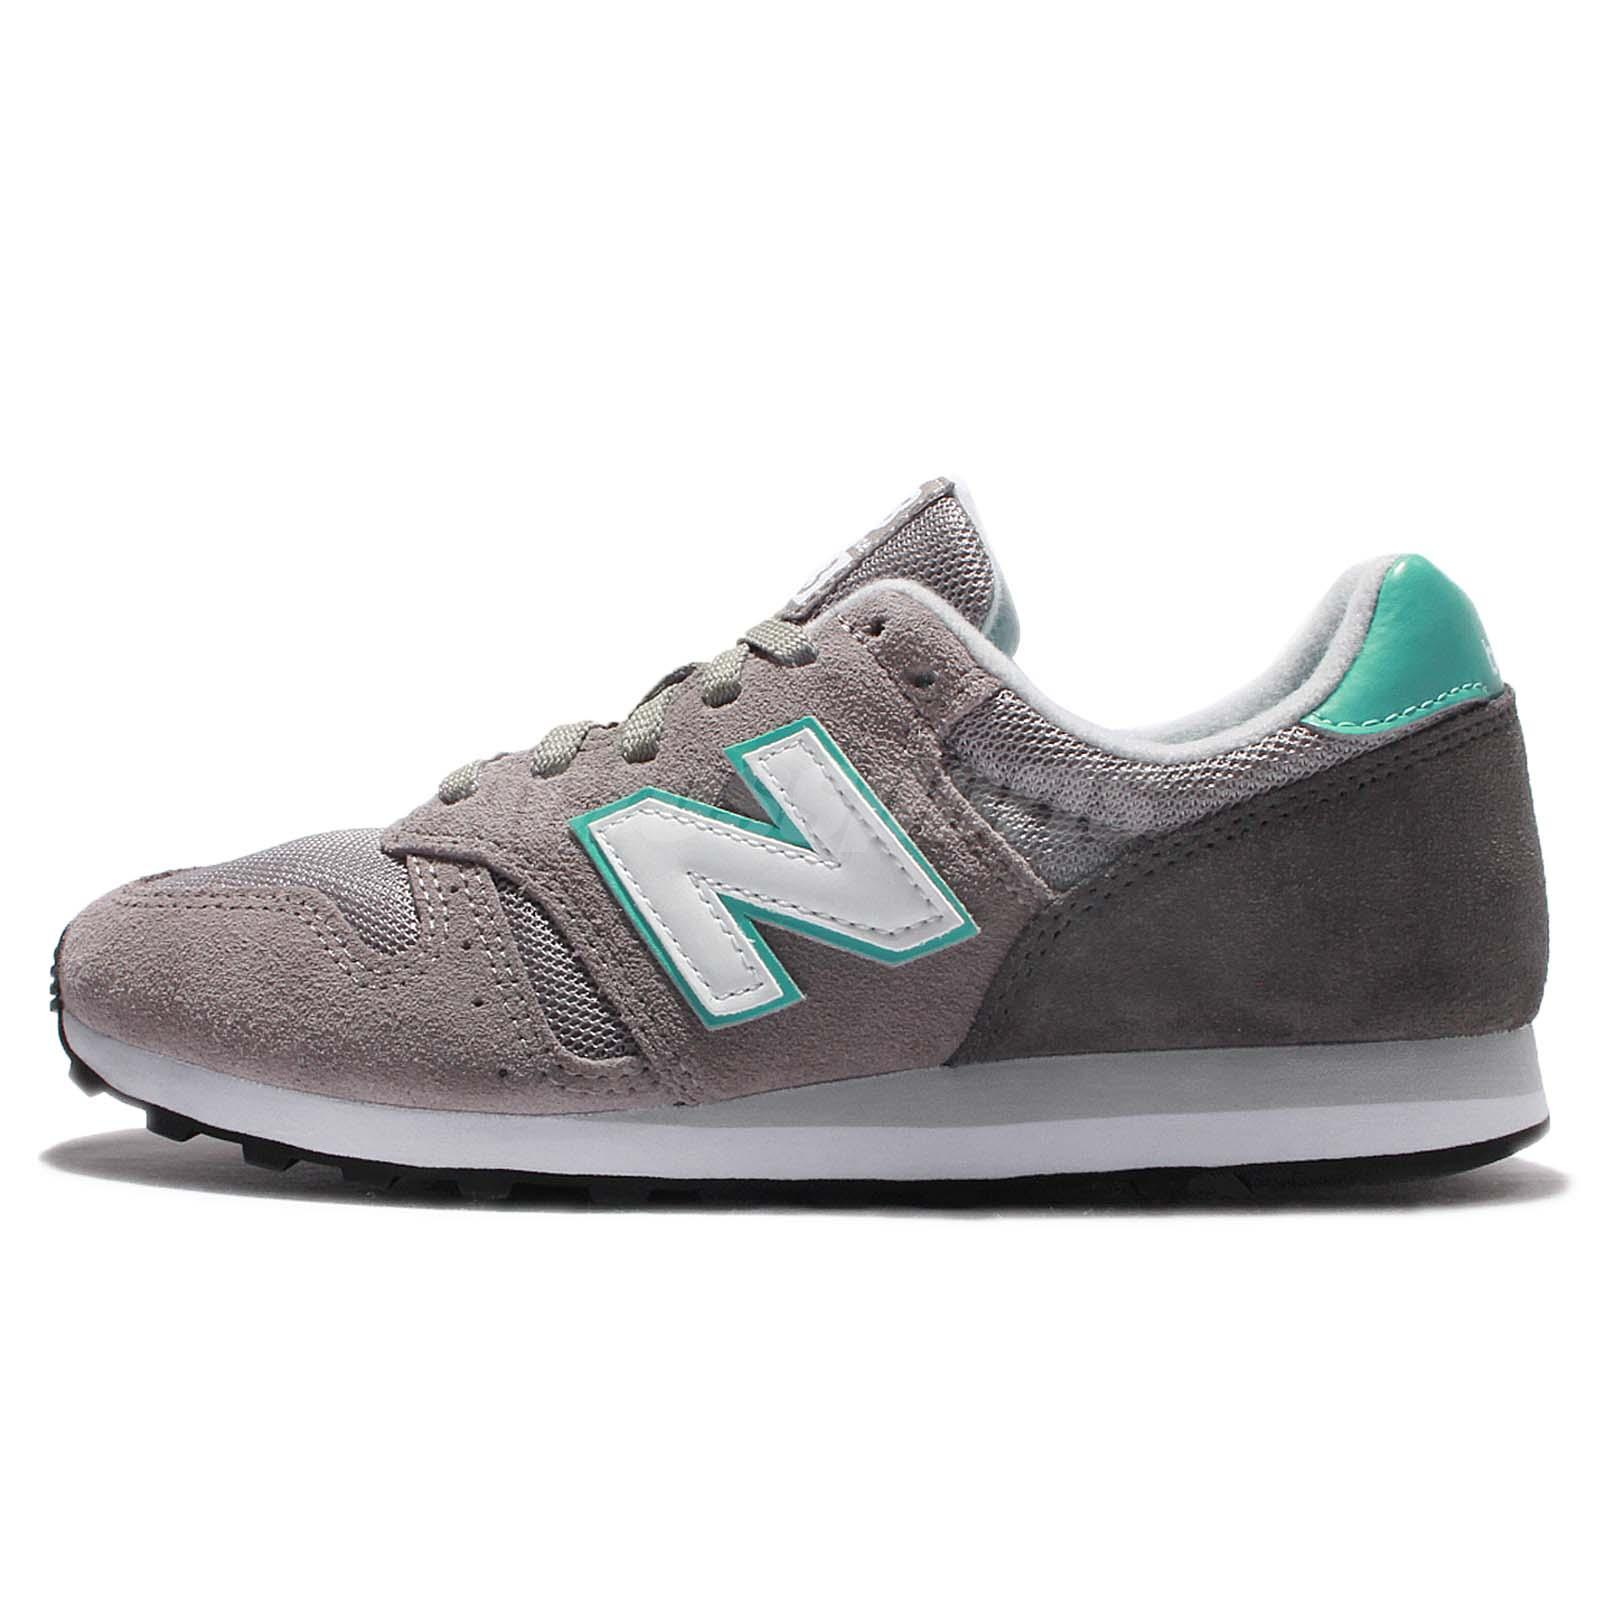 quality design 71c6c 8608d new balance revlite 580 womens